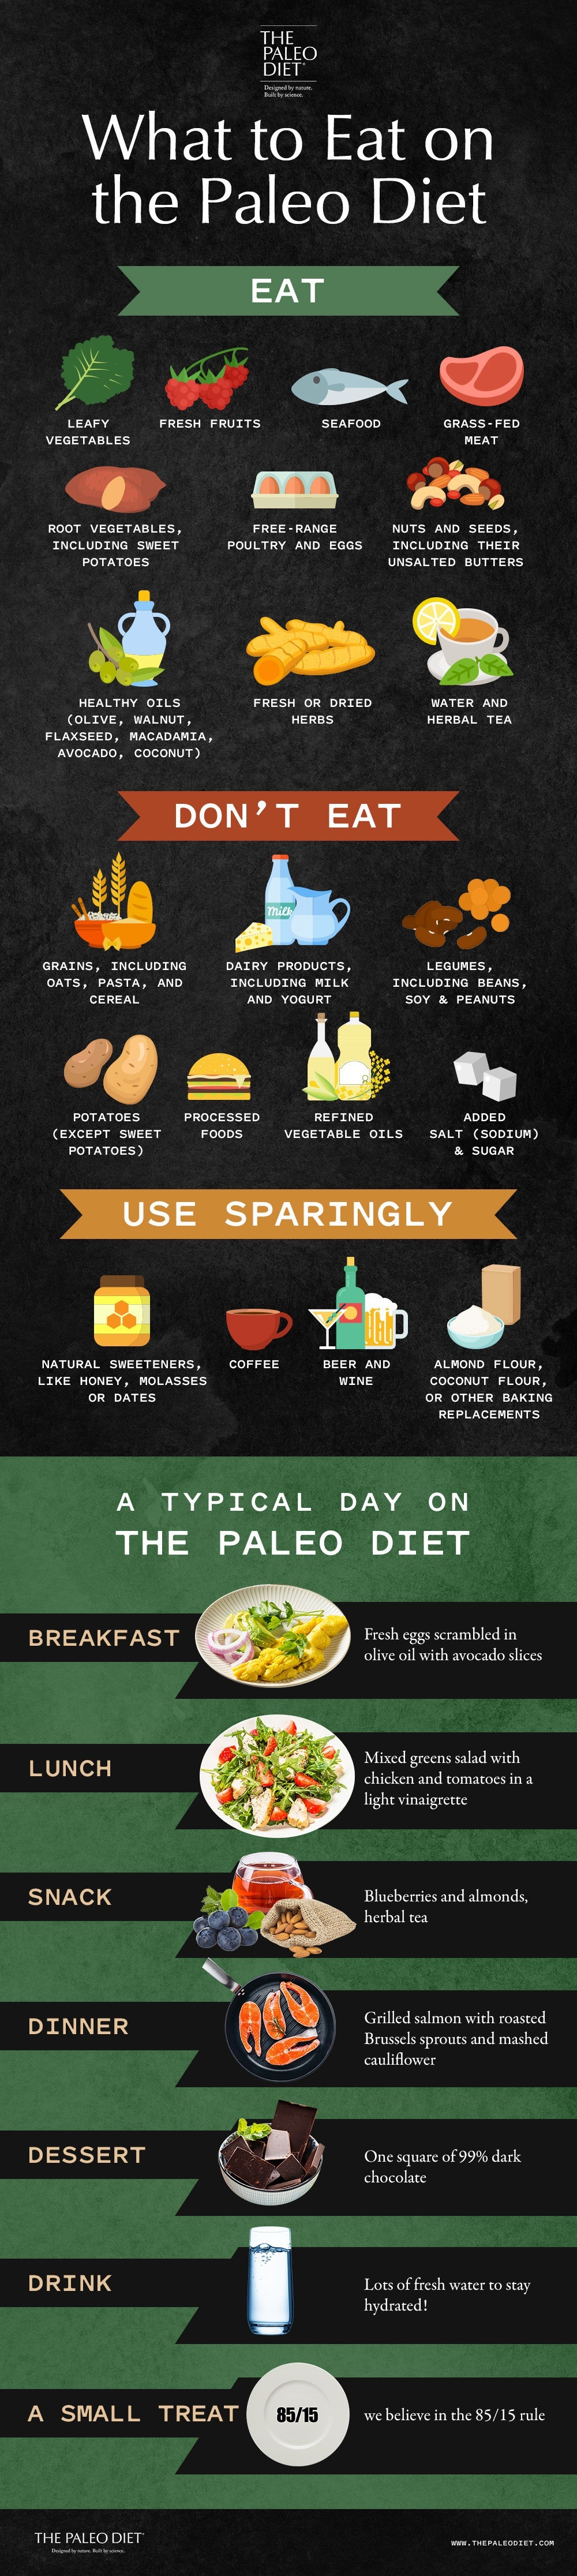 What To Eat On The Paleo Diet The Paleo Diet